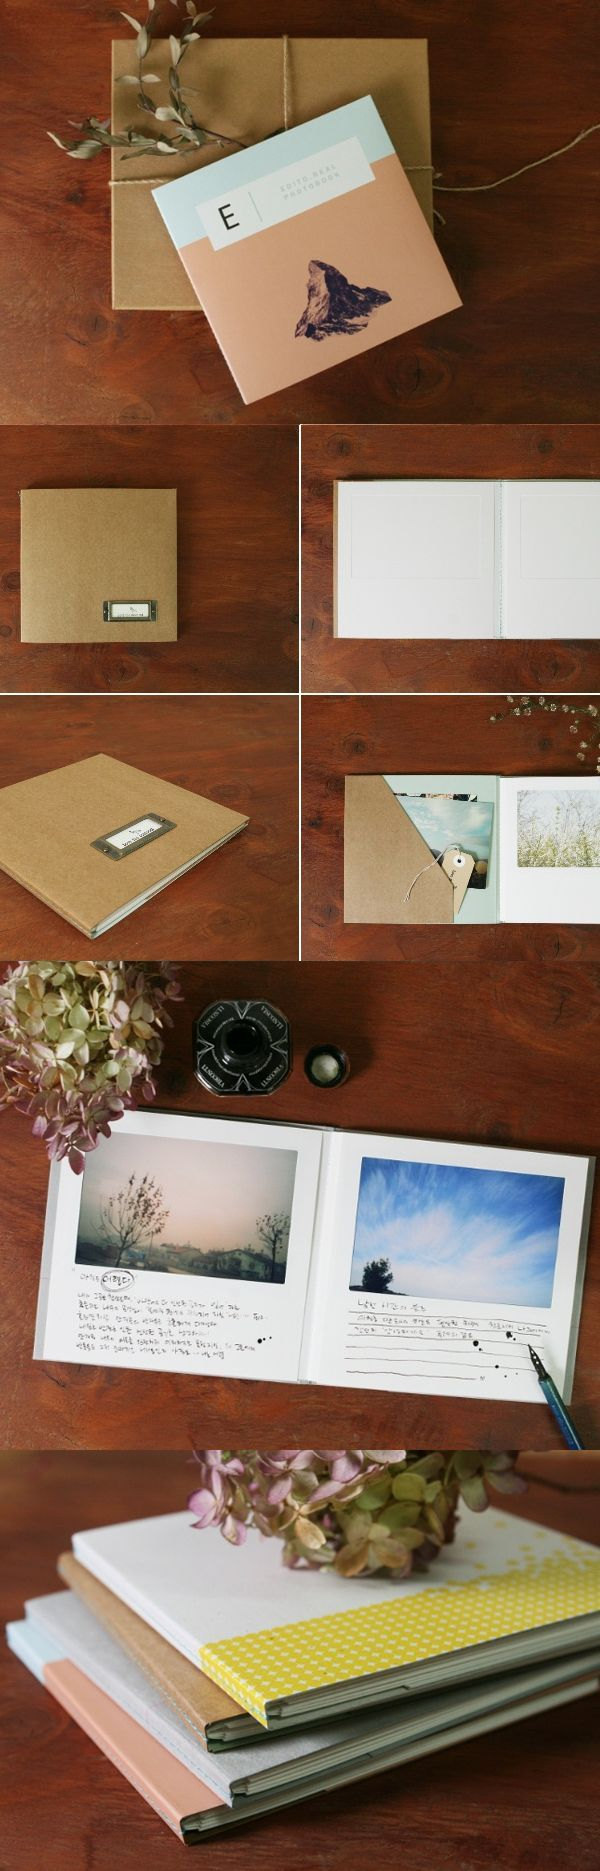 Make It A Photo Album Or A Scrapbook. Keep It Or Gift It. The